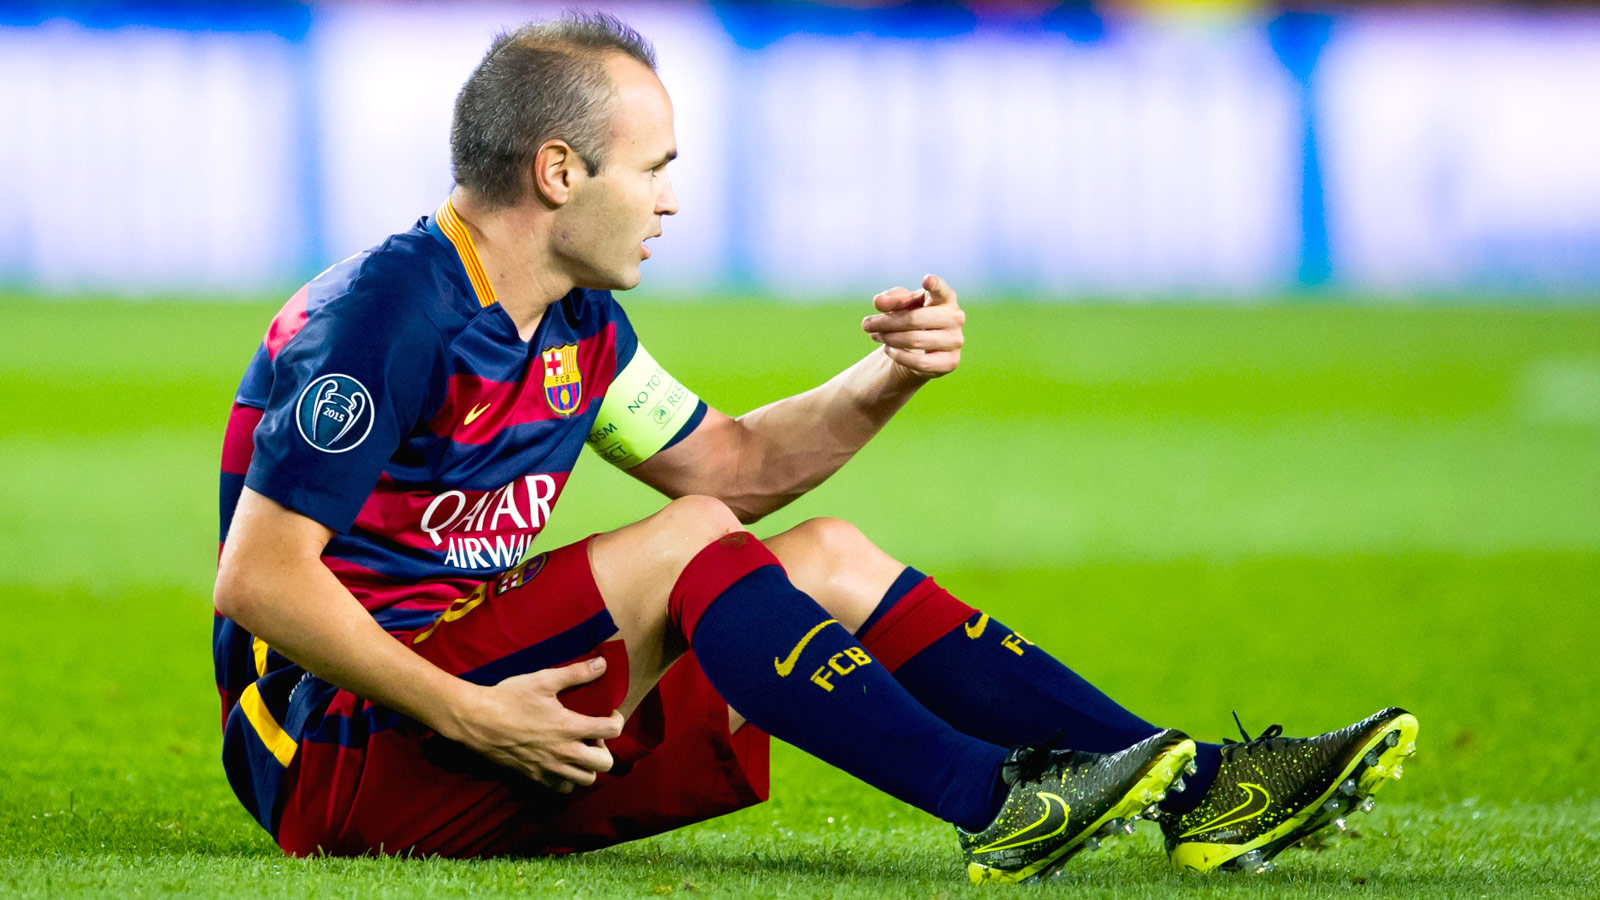 Barca's Iniesta suffers hamstring injury, out for unspecified period